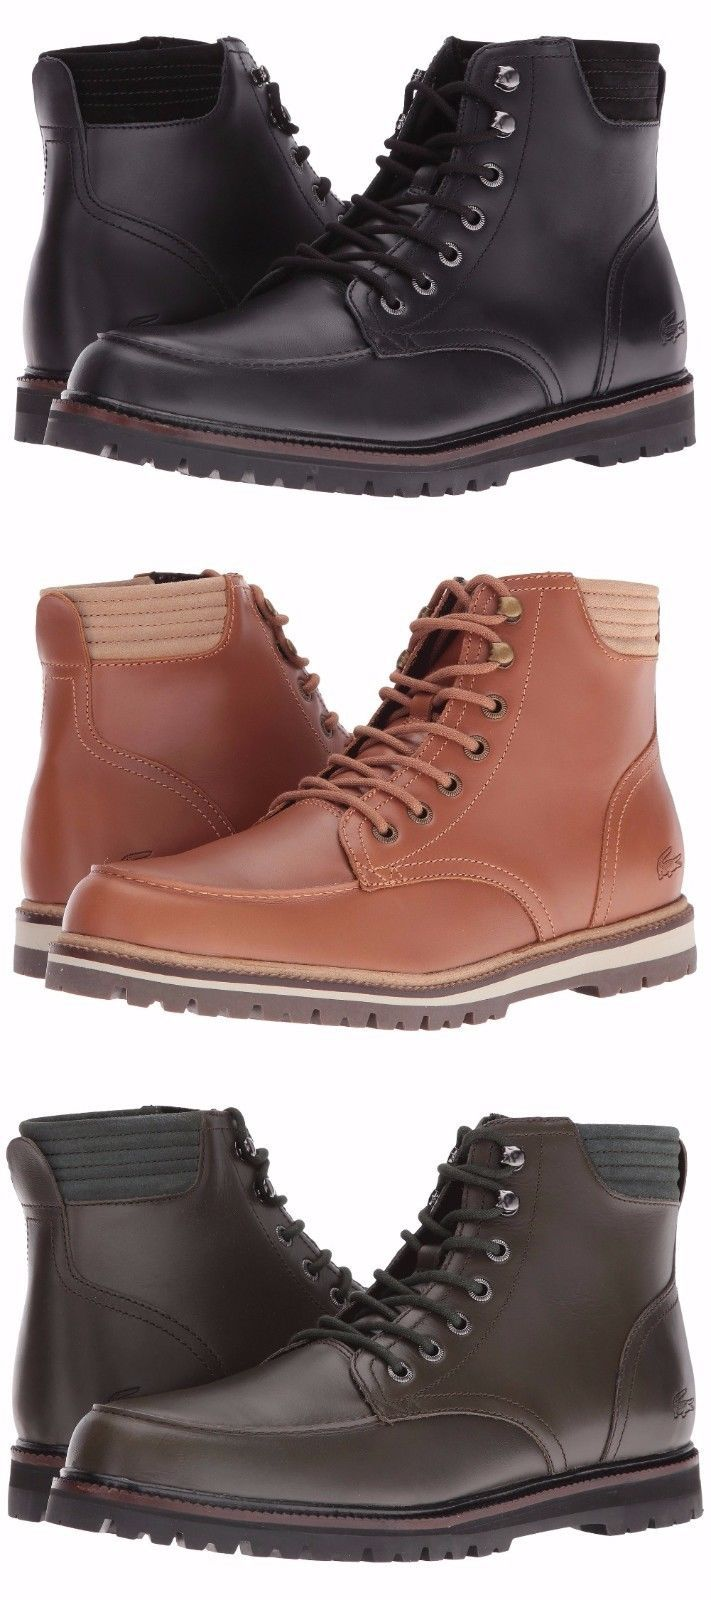 eb8ec8c68c7589 LACOSTE Leather Mens Boot Shoe! Sale 199 and 50 similar items. 57